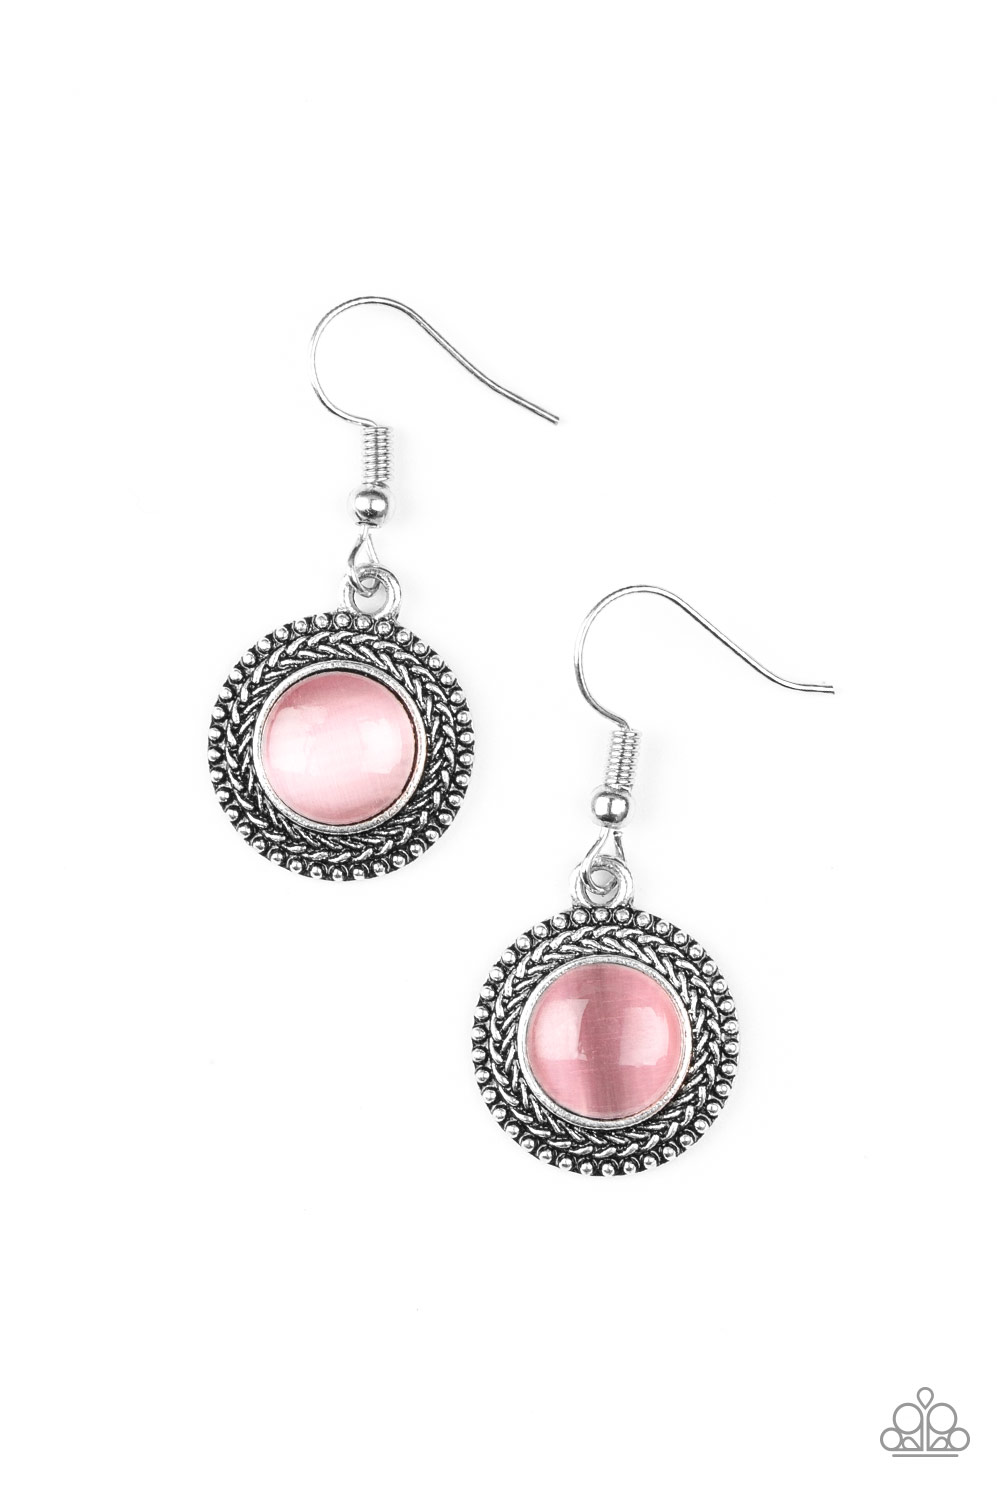 Pink Moonstone Earrings by Paparazzi $5 my-bling.com